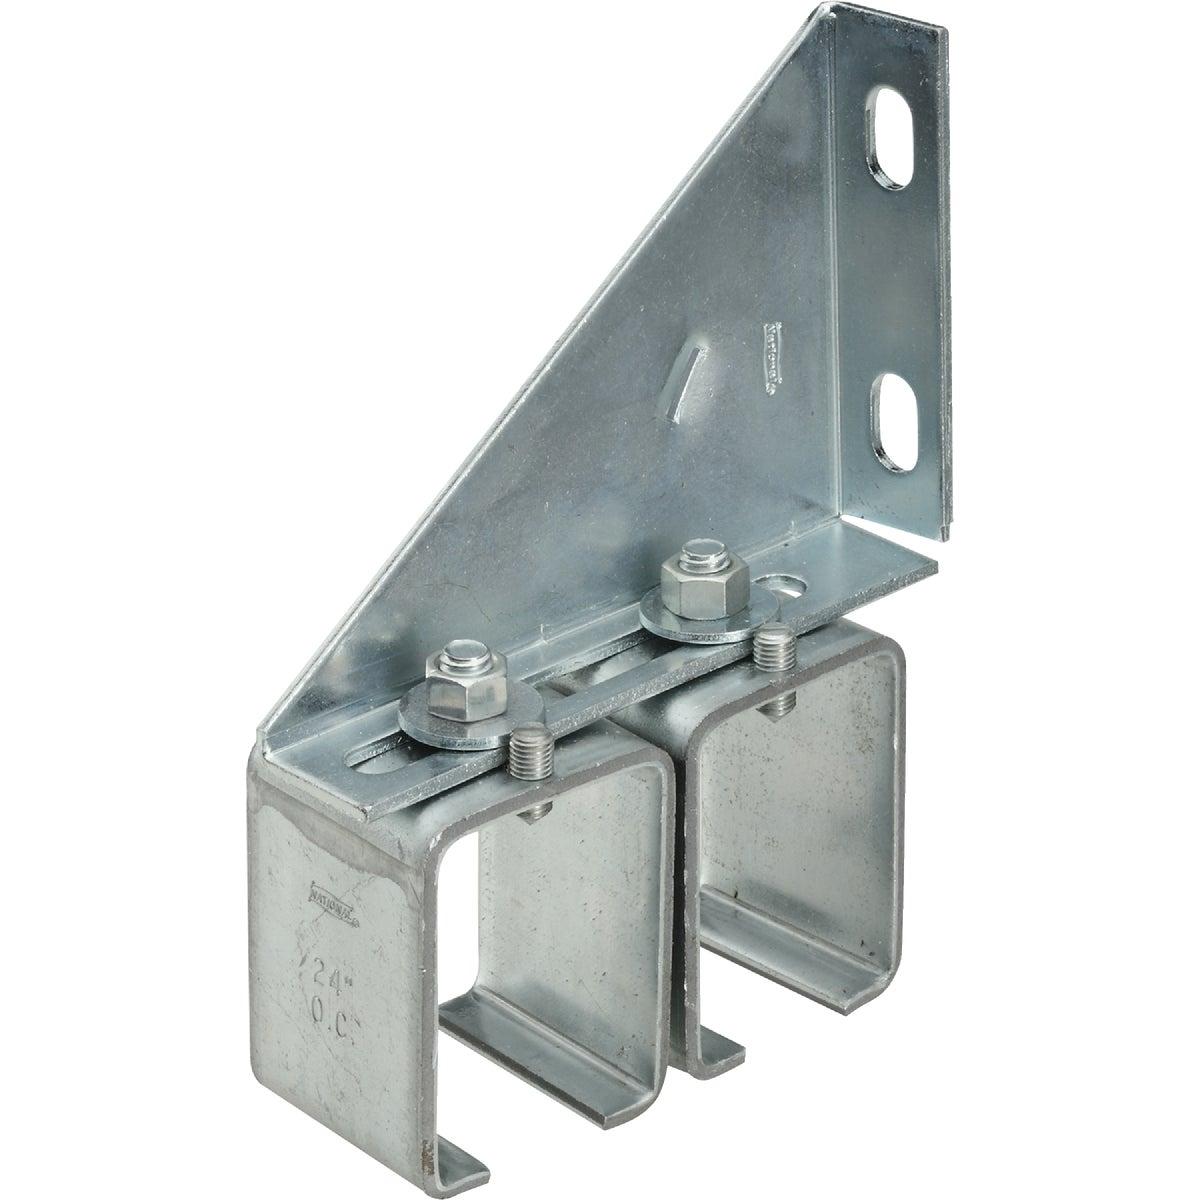 DOUBLE SPLICE BRACKET - N104752 by National Mfg Co